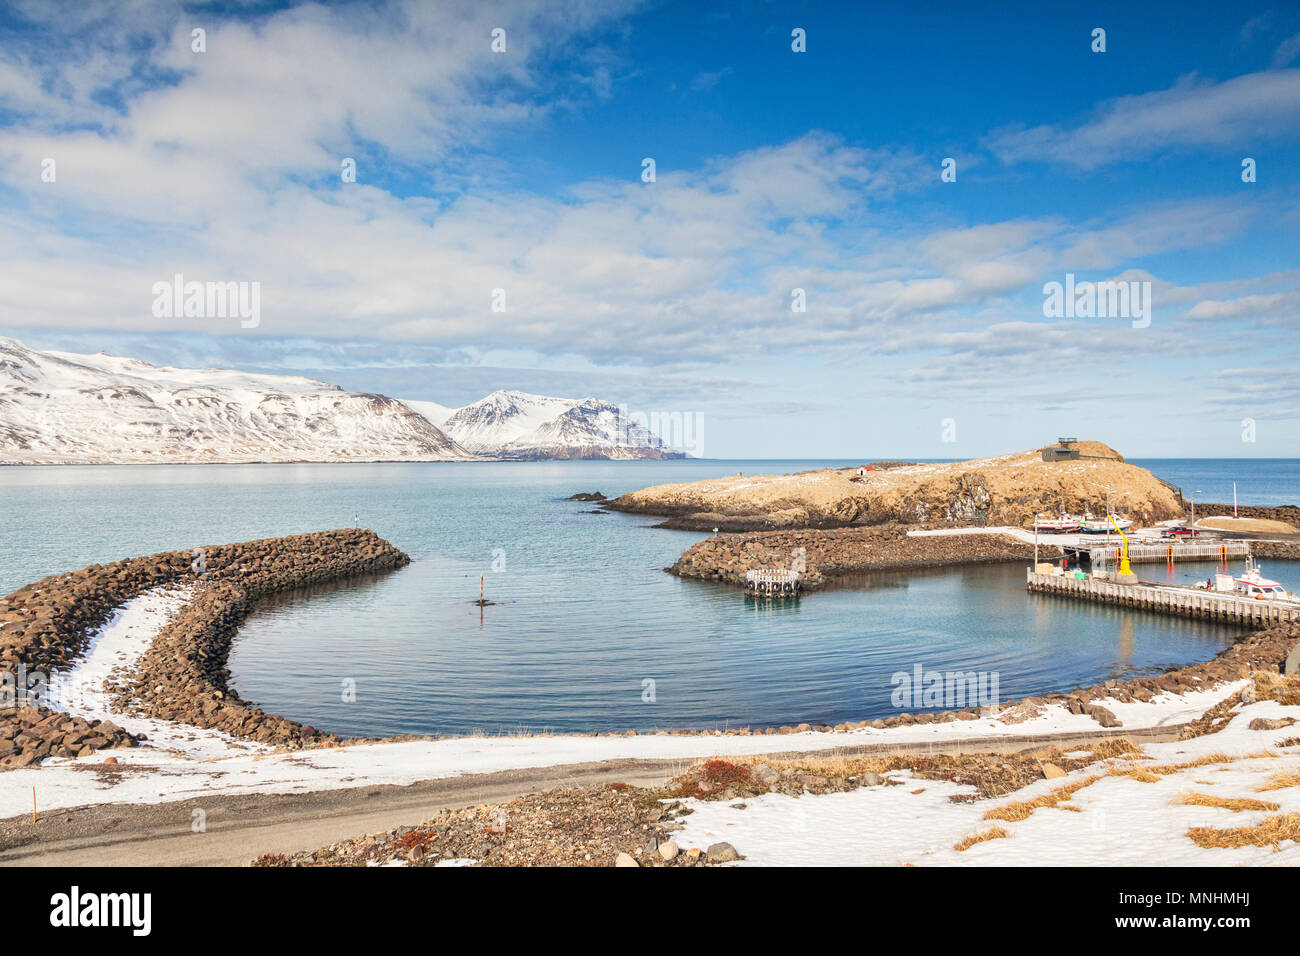 The small harbour at Bakkagerdi in East Iceland on a sunny spring day. - Stock Image